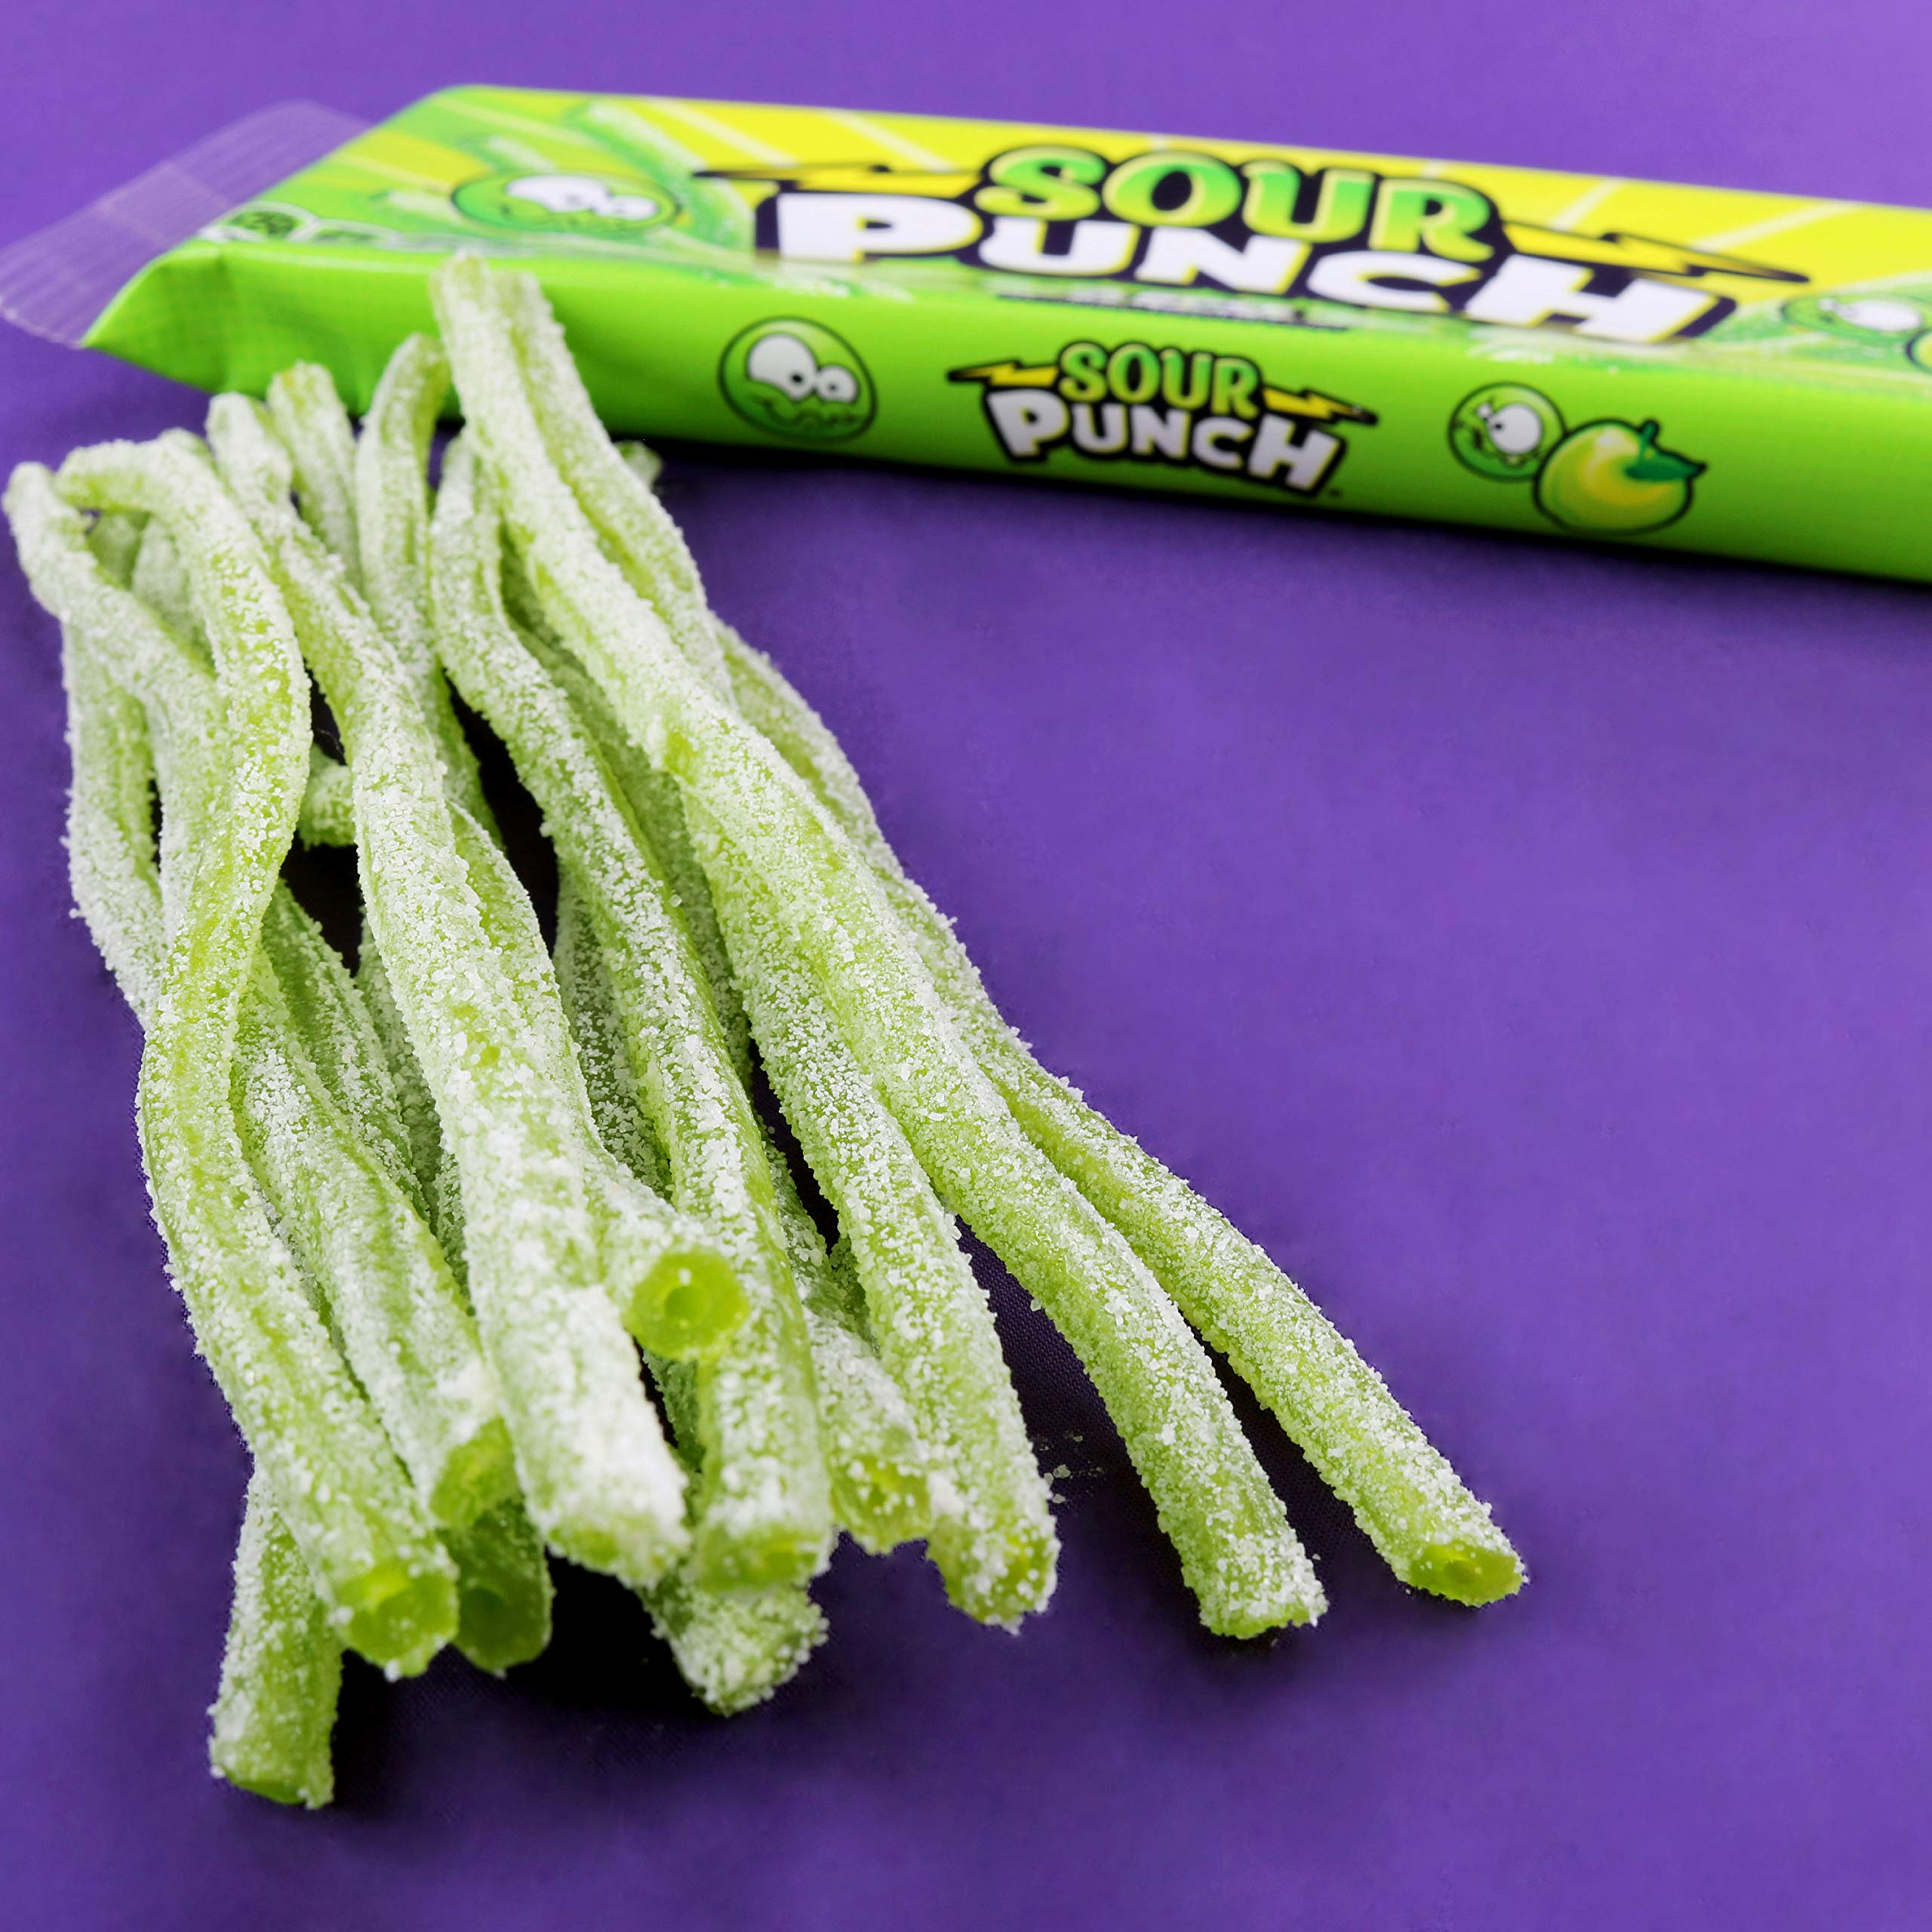 Sour Punch Straws, Sweet & Sour Apple Fruit Flavor, Chewy Candy, 4.5oz Tray (24 Pack) by Sour Punch (Image #4)